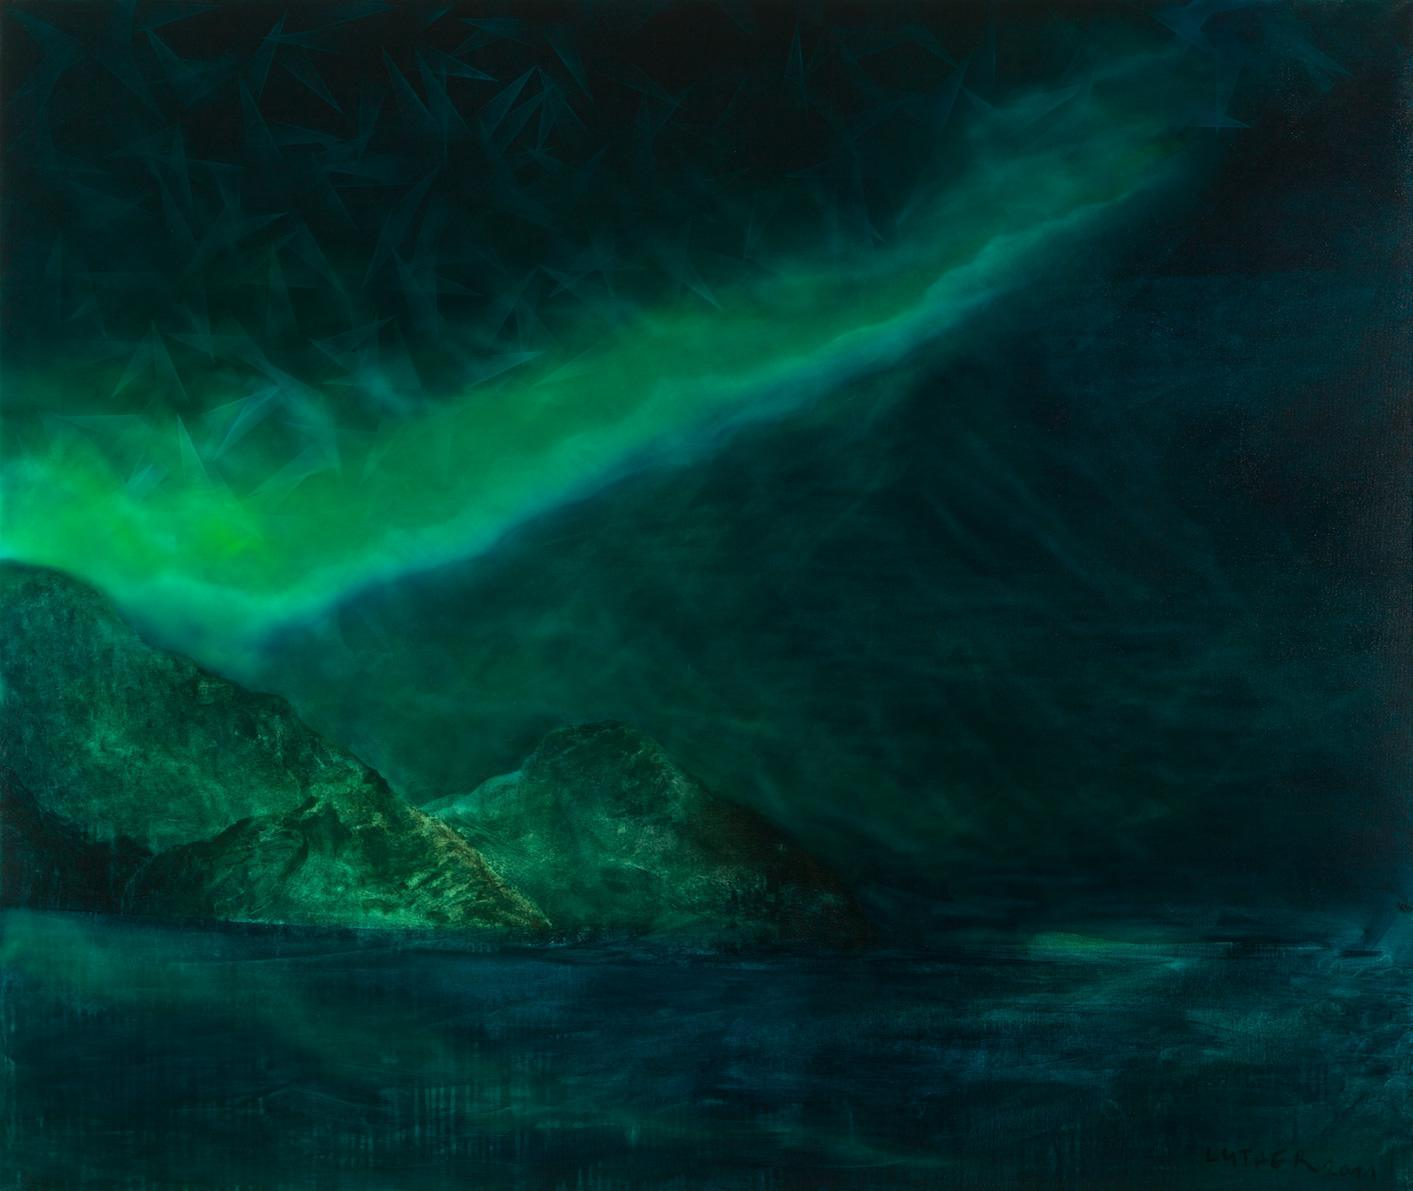 NORDLYS 2011<br>Oil on canvas 59 x 70.9 in.<br> Collection SØR | Rusche, Oelde | Berlin<br>© Kai Luther|VG Bild-Kunst, Bonn 2017